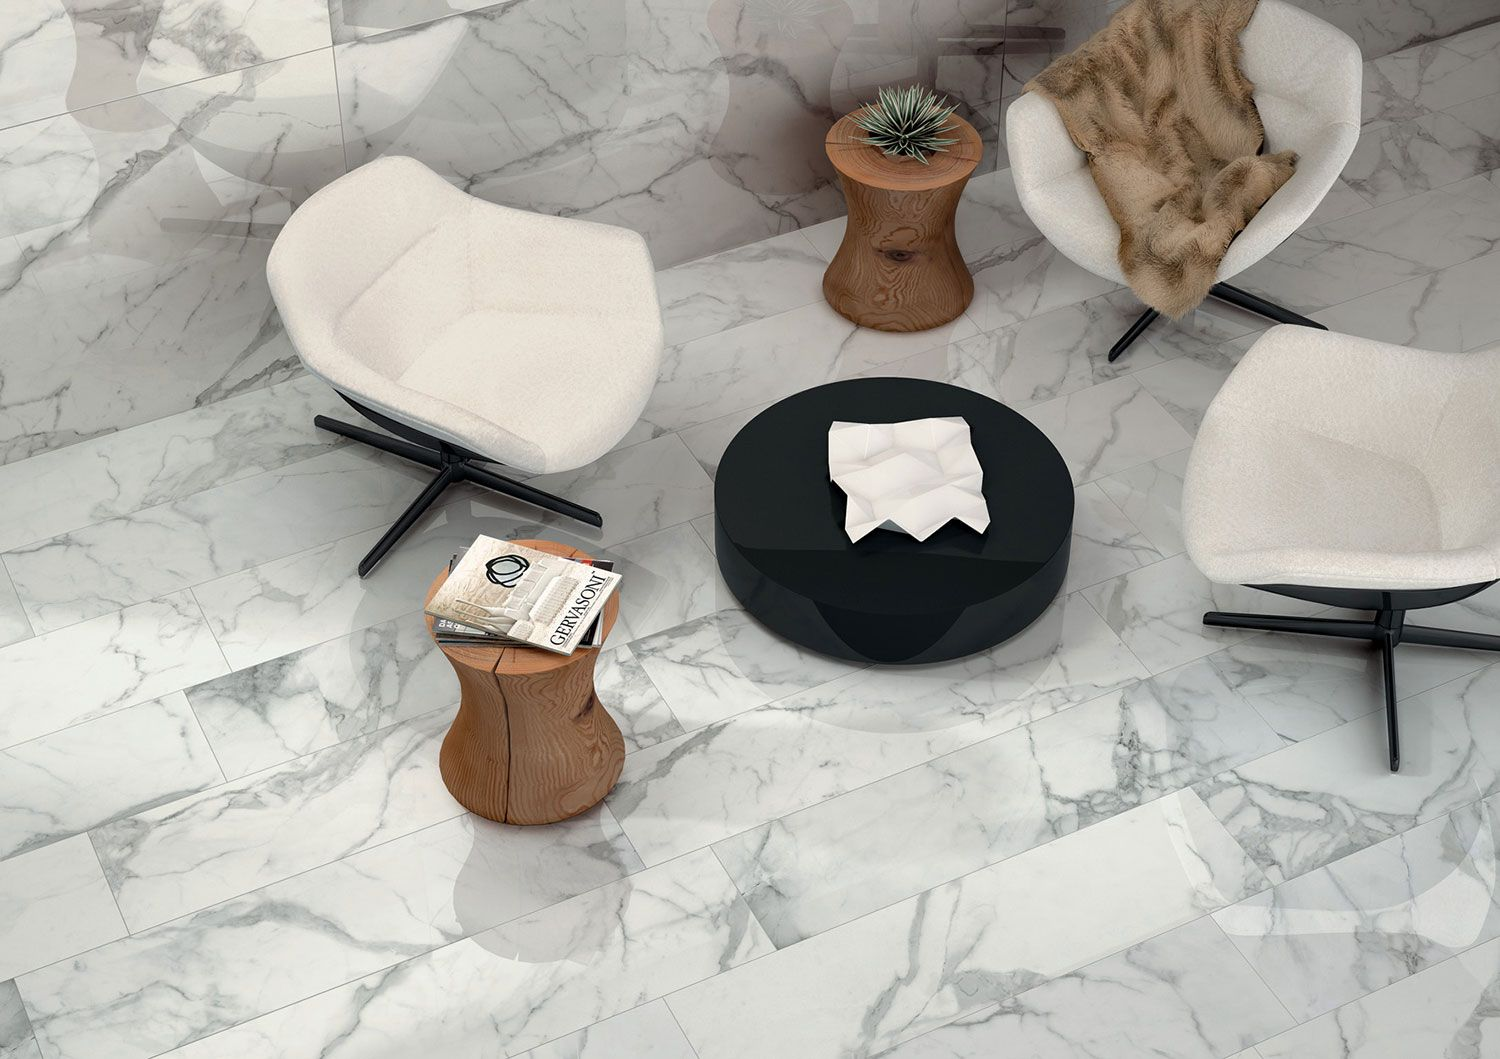 Jewels encore marble effect tiles mirage ferrari floor jewels encore marble effect tiles mirage dailygadgetfo Gallery